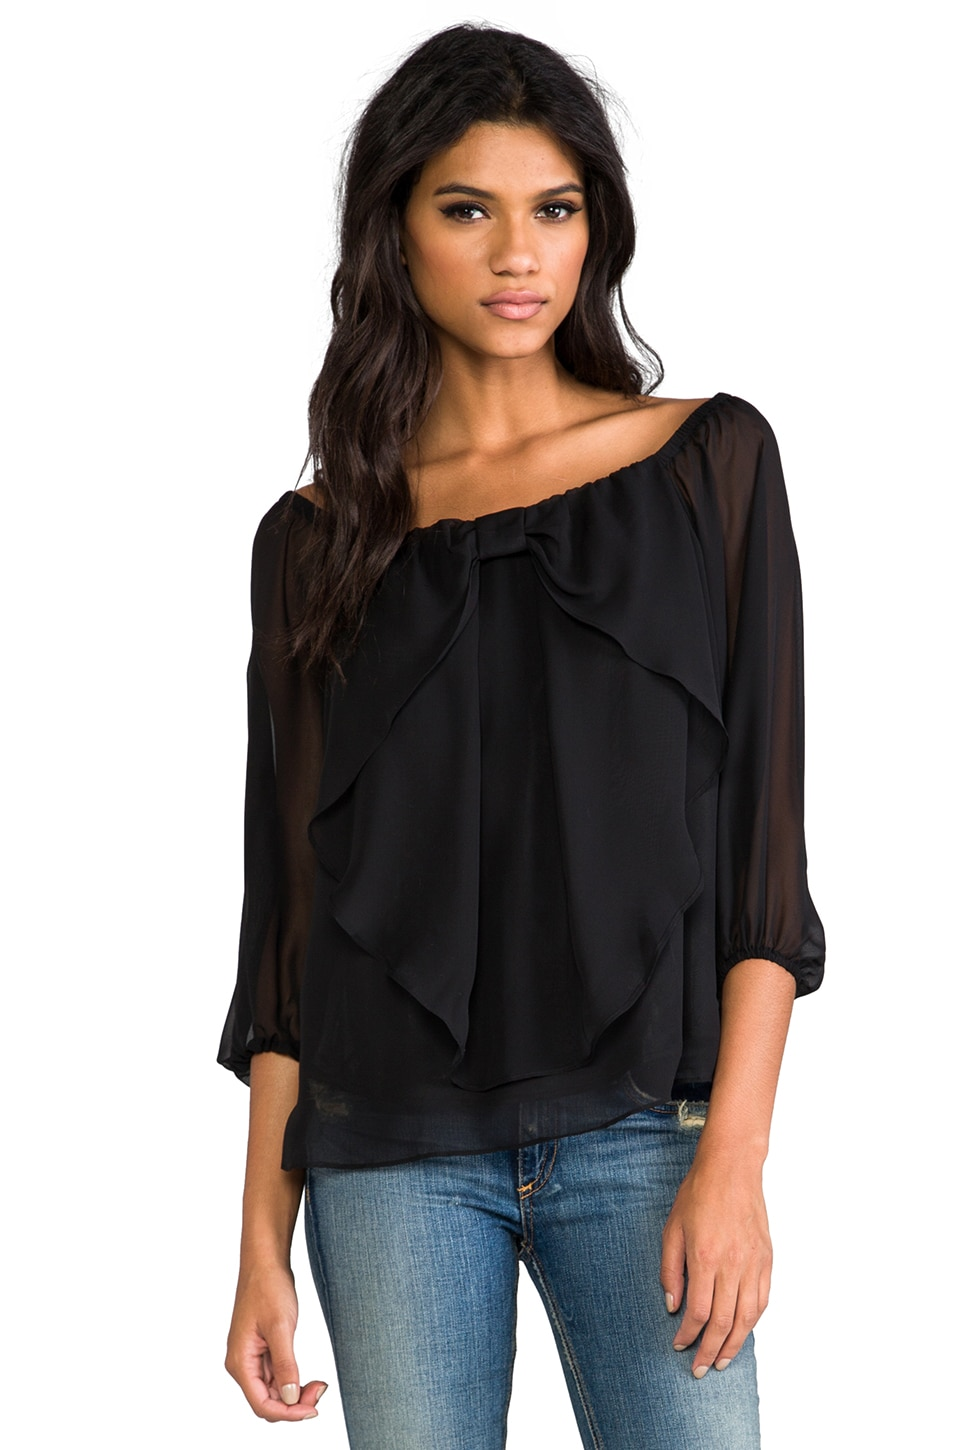 VAVA by Joy Han Lisabeth Top in Black